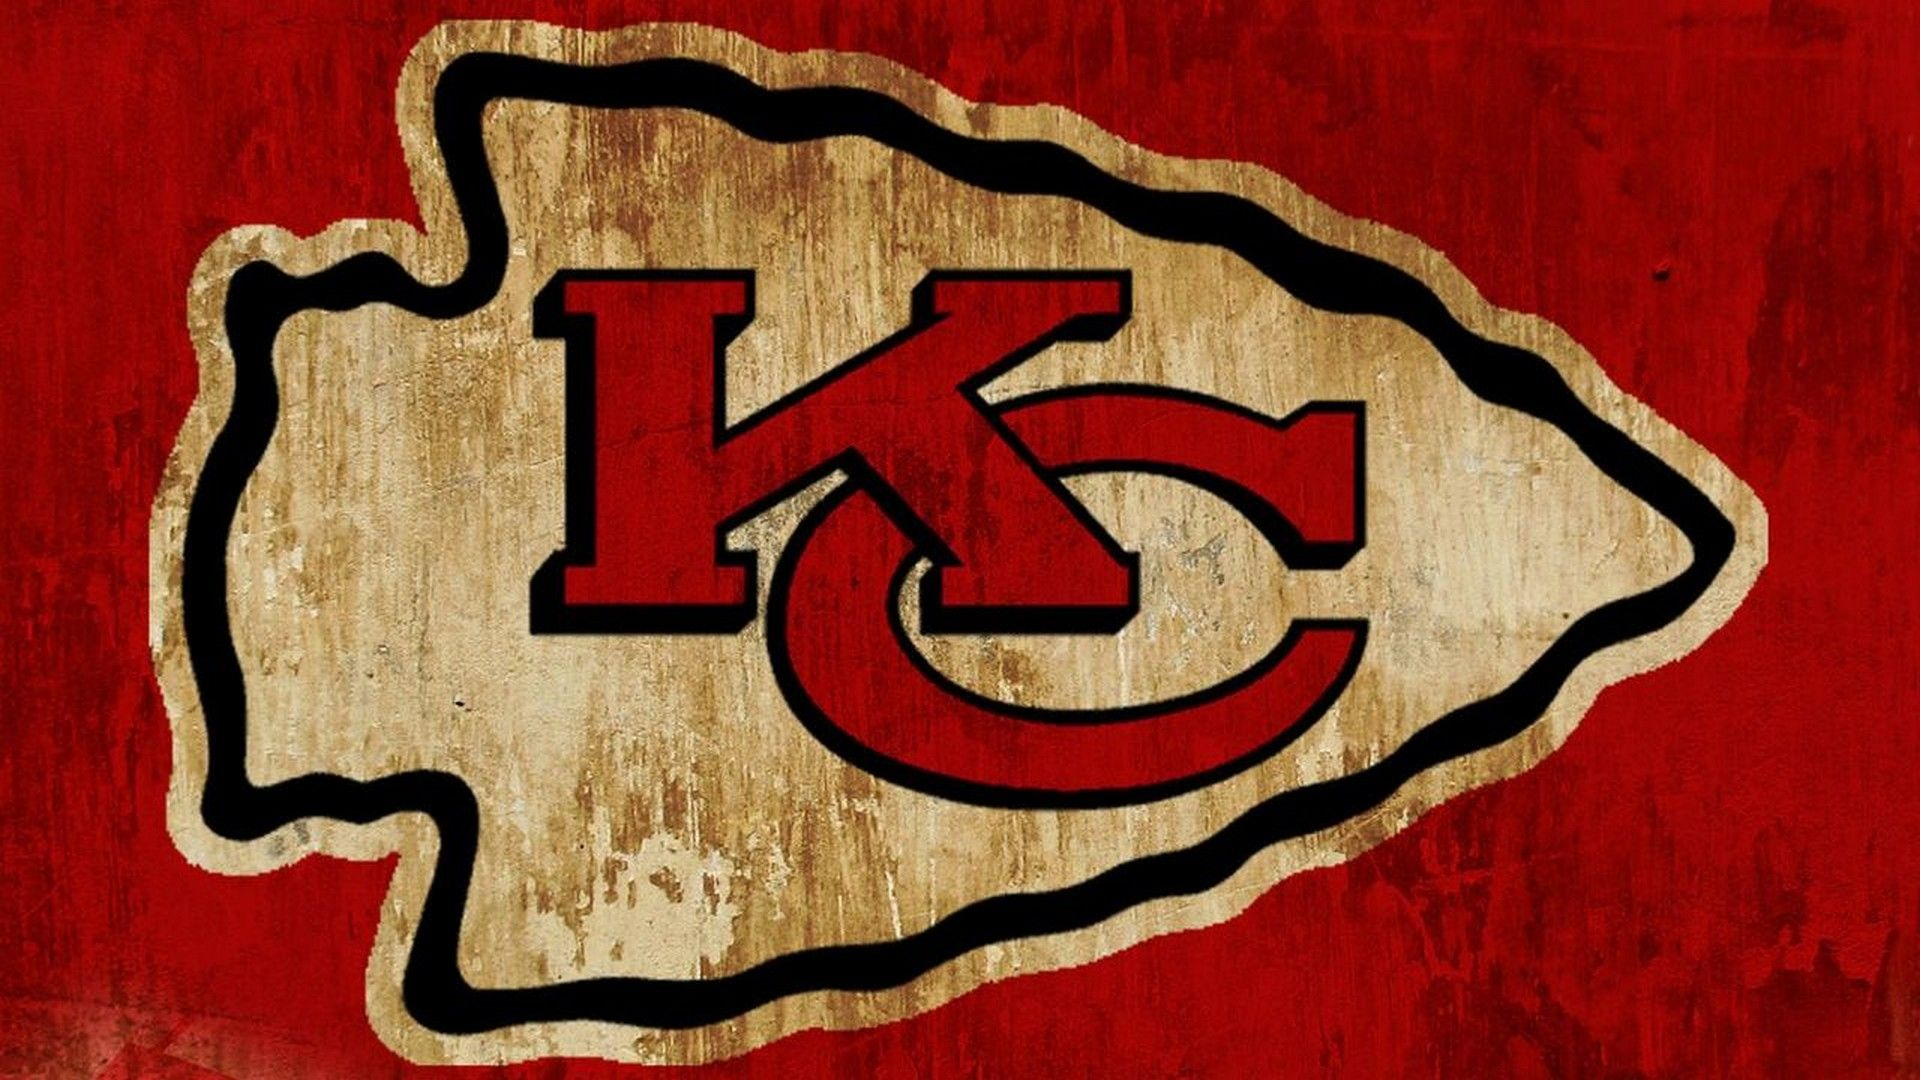 Kansas City Chiefs Wallpaper HD Chiefs wallpaper, Kansas